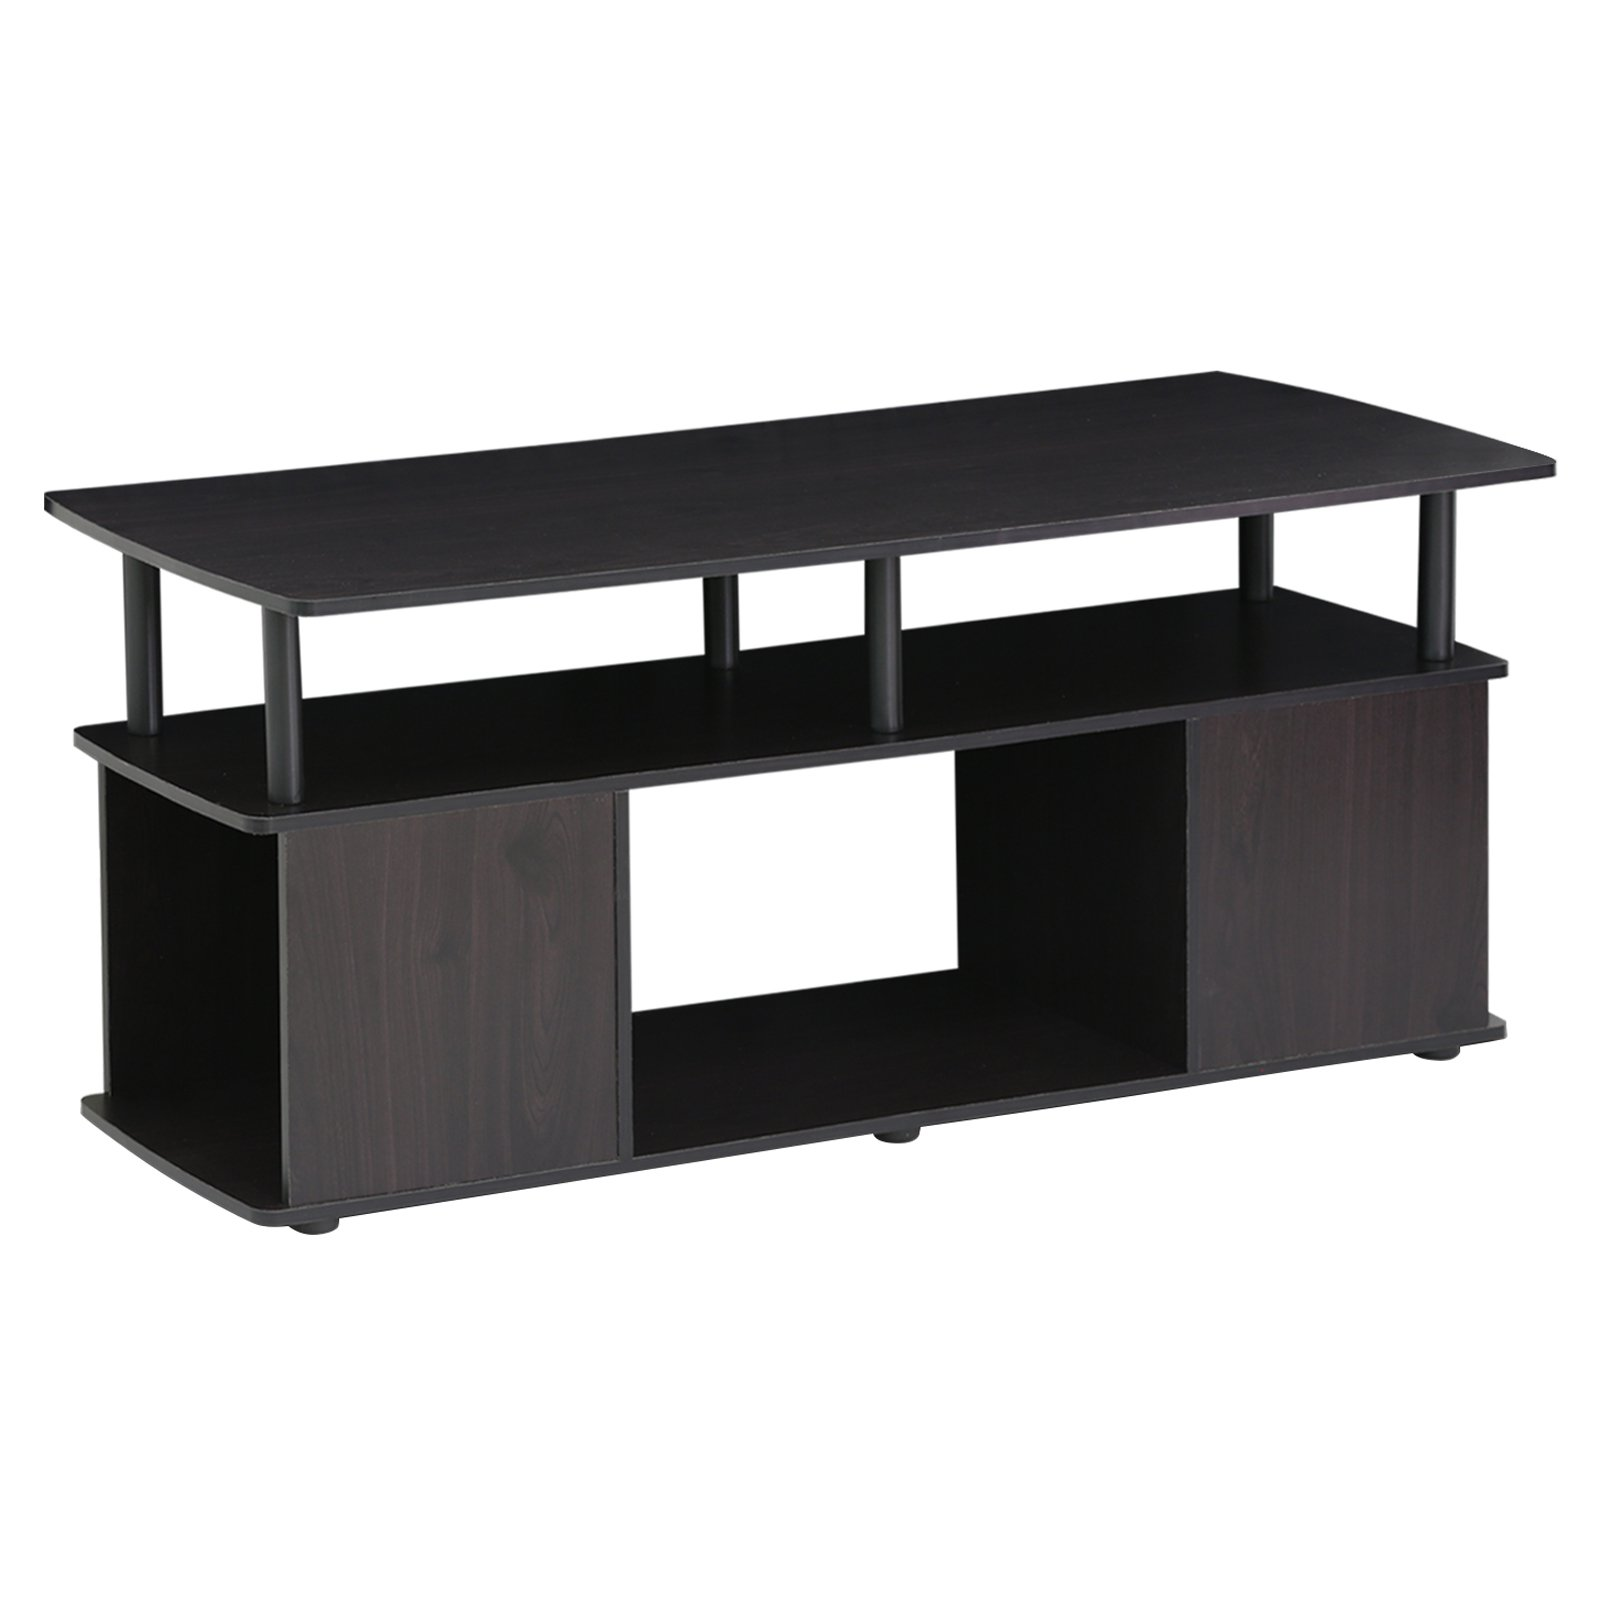 Furinno JAYA Utility Design Coffee Table BKW Walmart